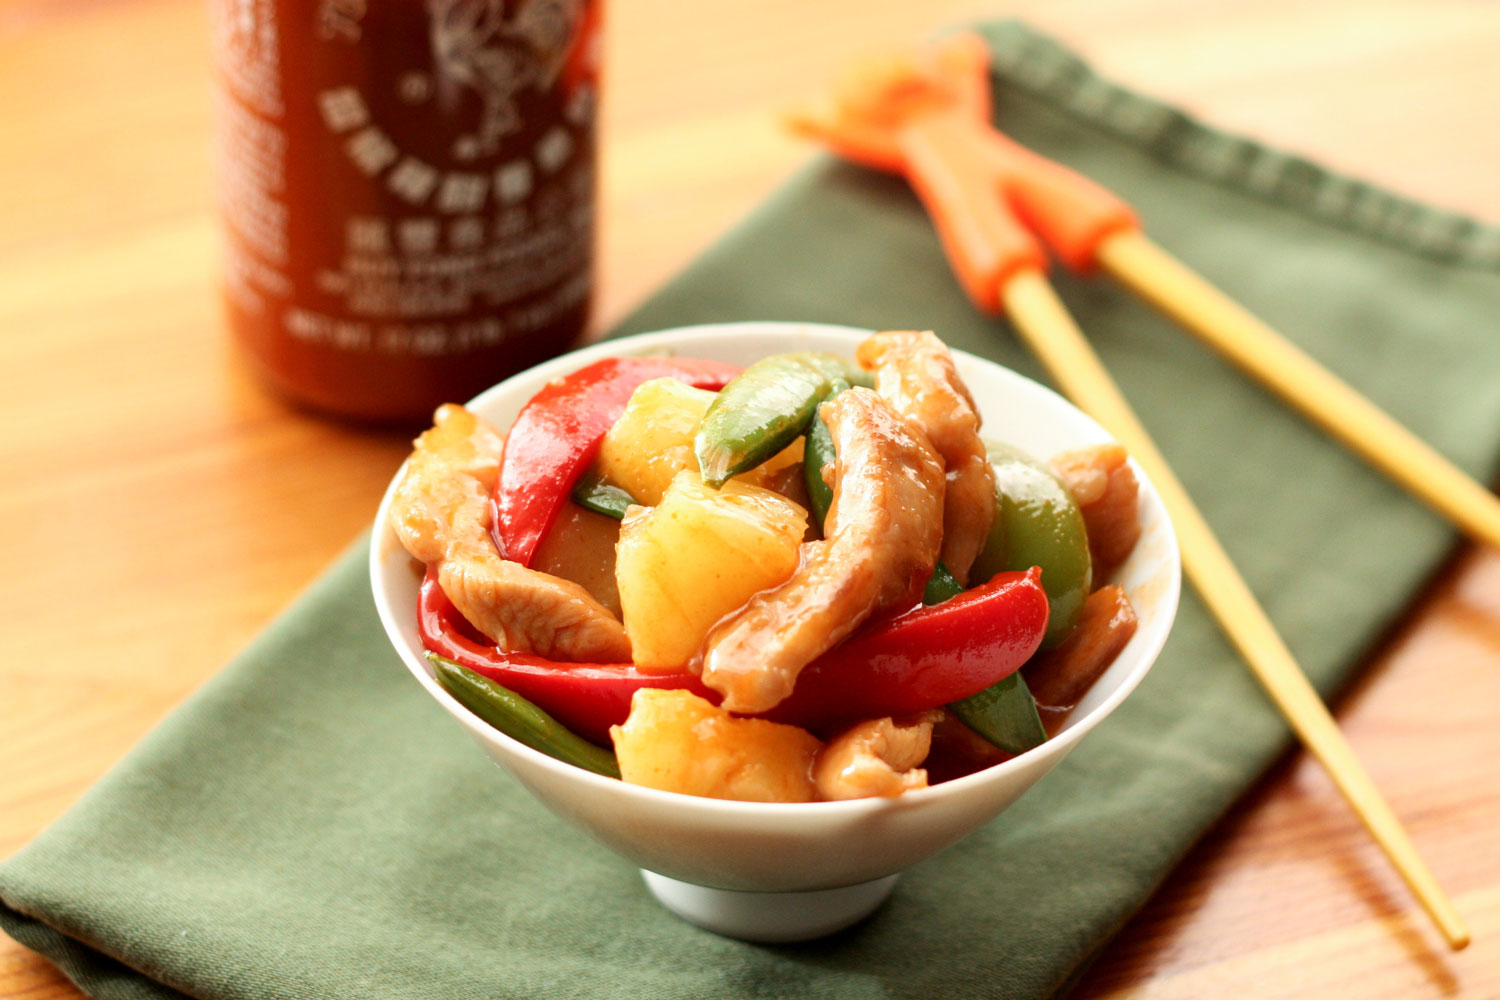 Sweet and Sour Chicken Stir-Fry - get the recipe at barefeetinthekitchen.com